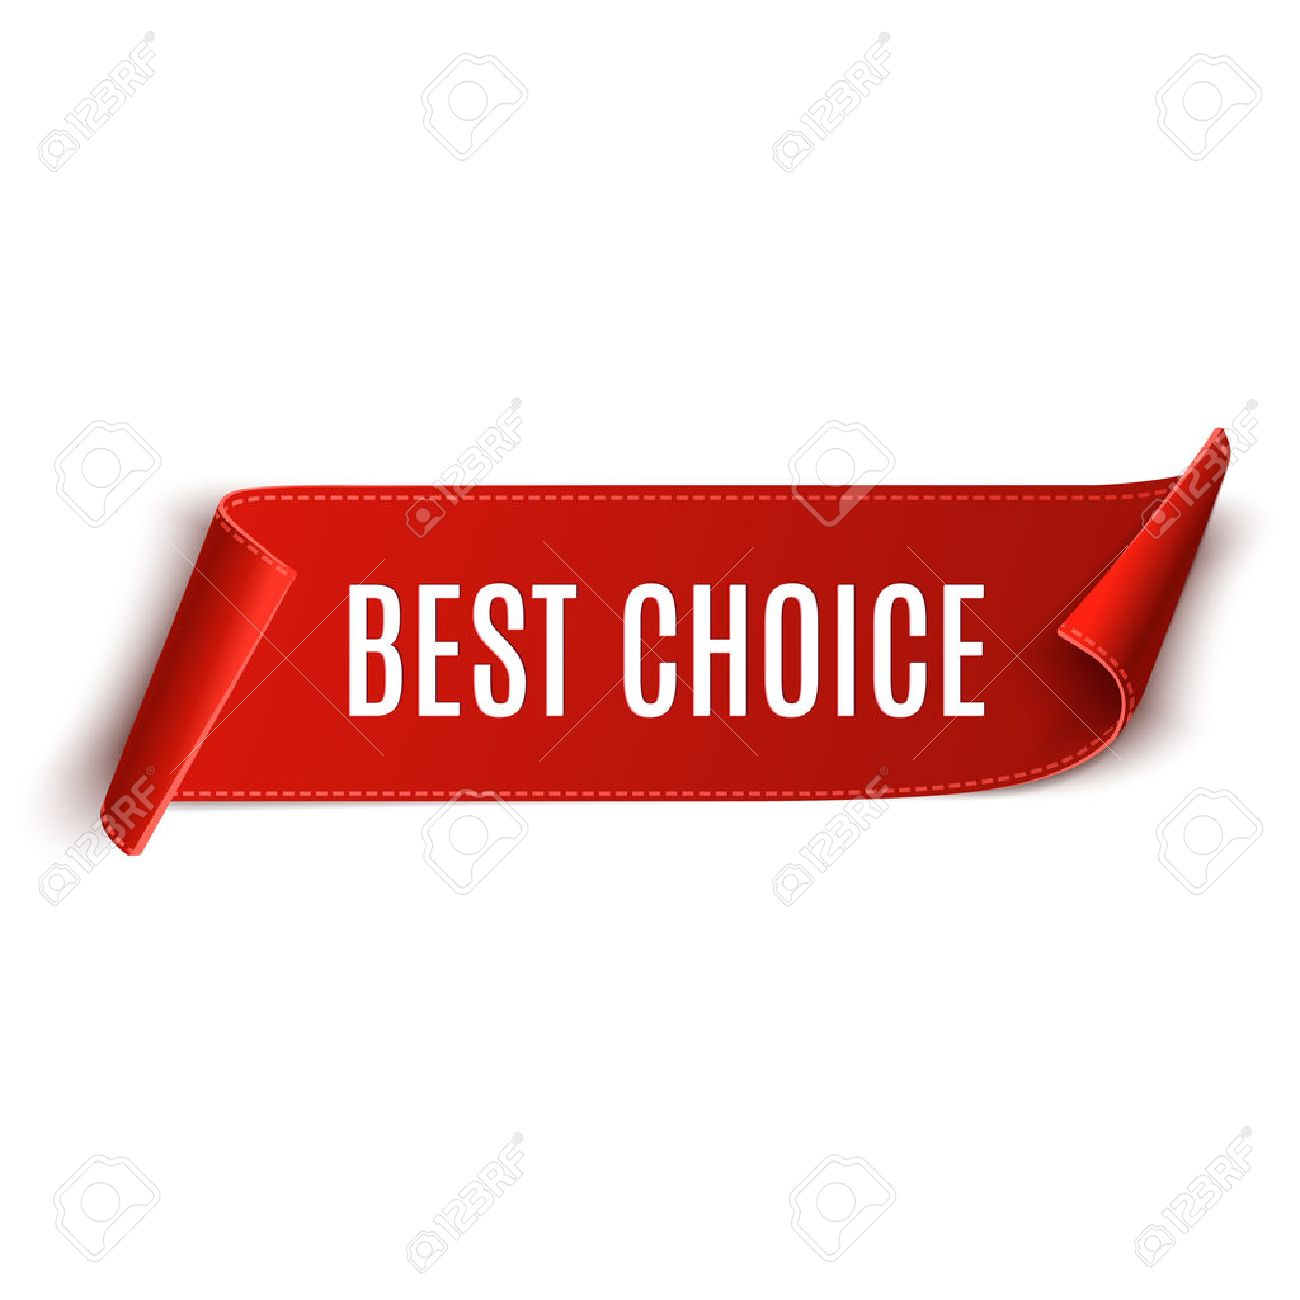 best choice vector banner